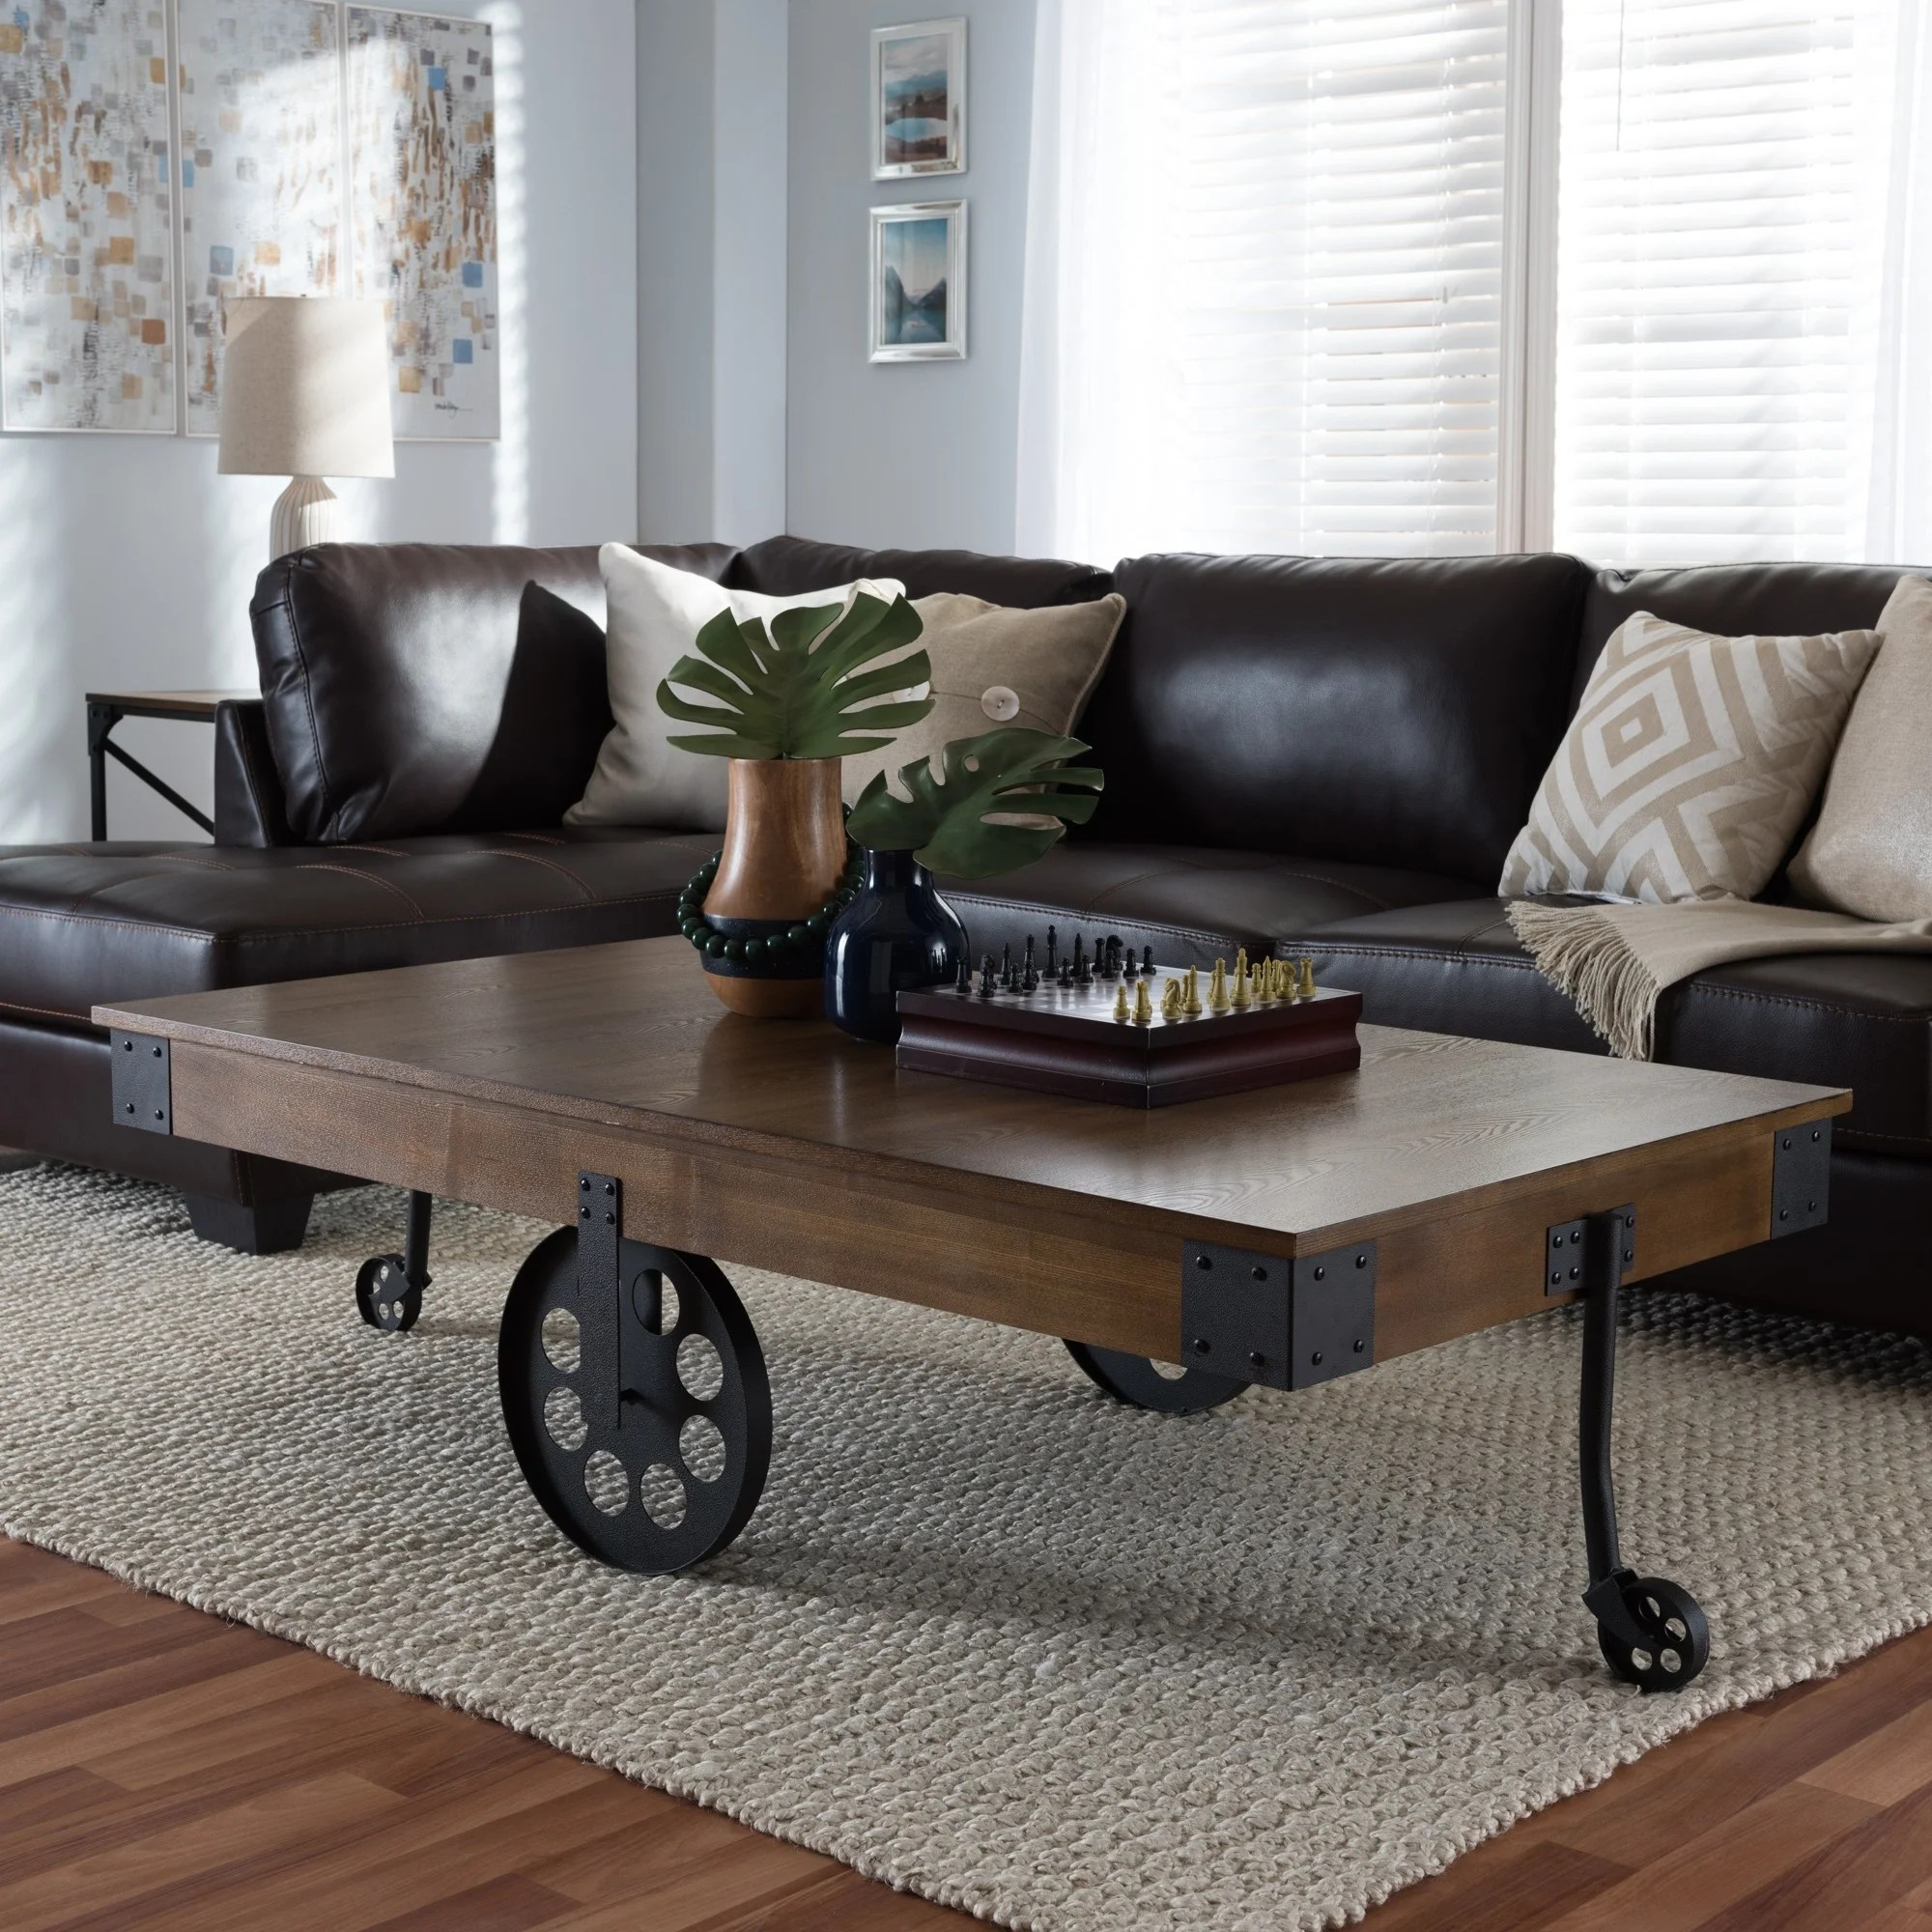 baxton studio lancashire rustic industrial vintage look wood and metal coffee table